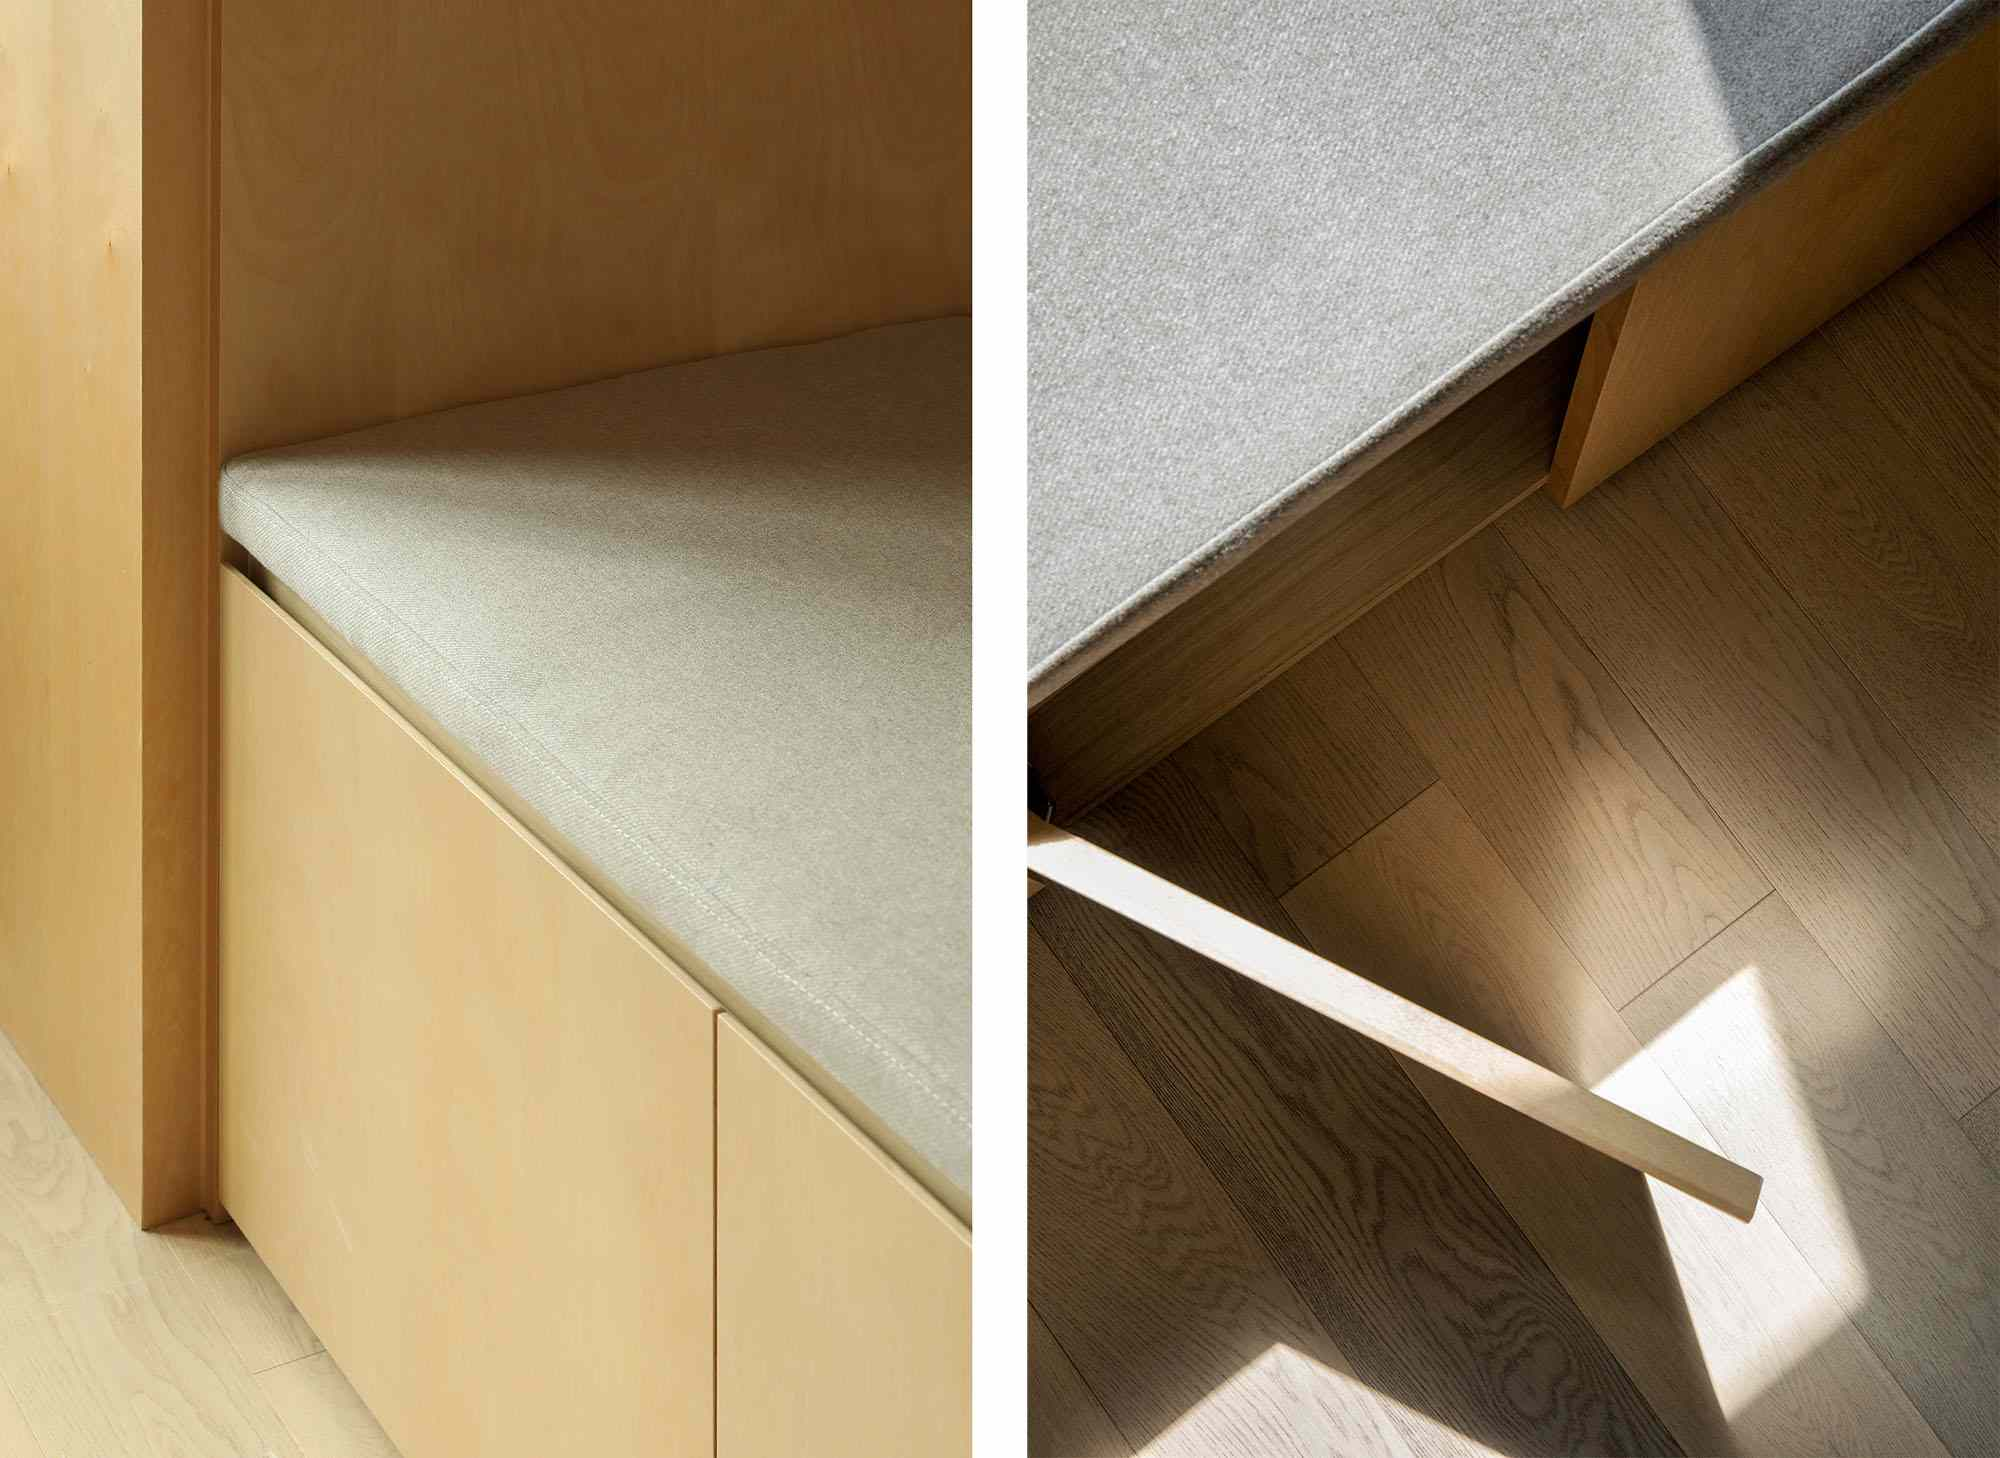 LIFE micro-apartments coliving Ian Lee cabinets